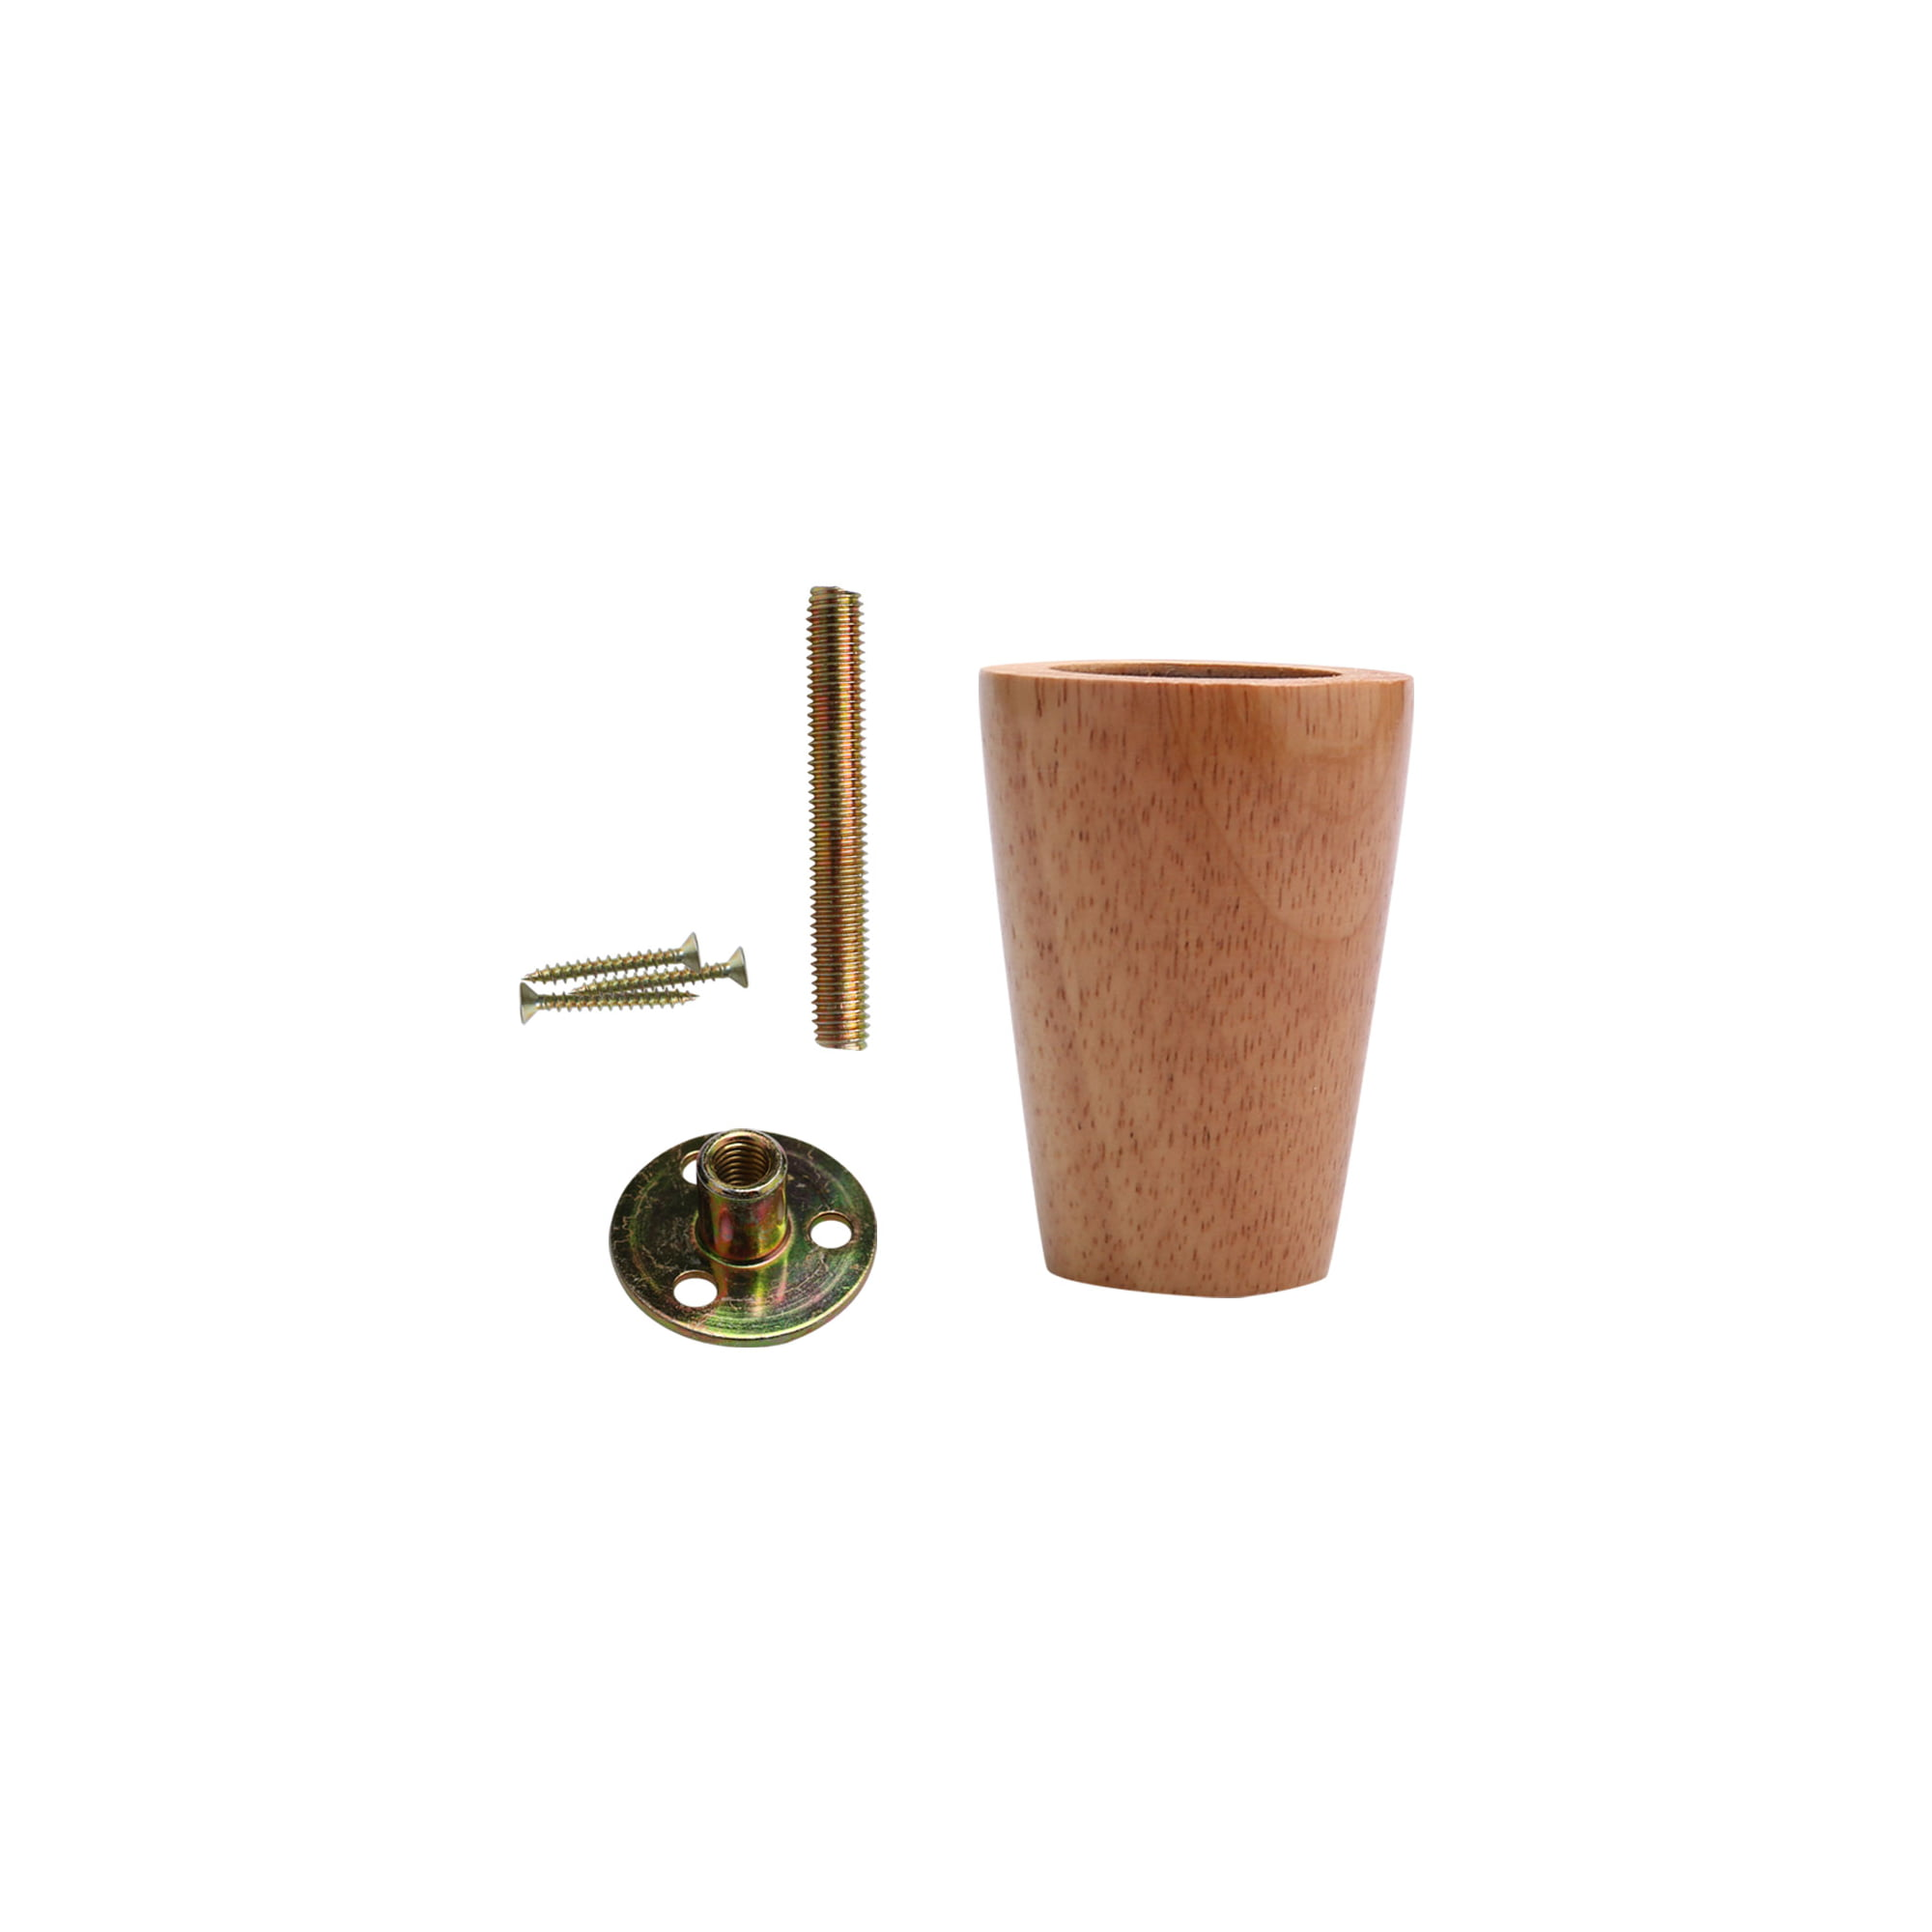 3 Inch Round Wood Furniture Legs Sofa Cabinet Feet Replacement Height Adjuster